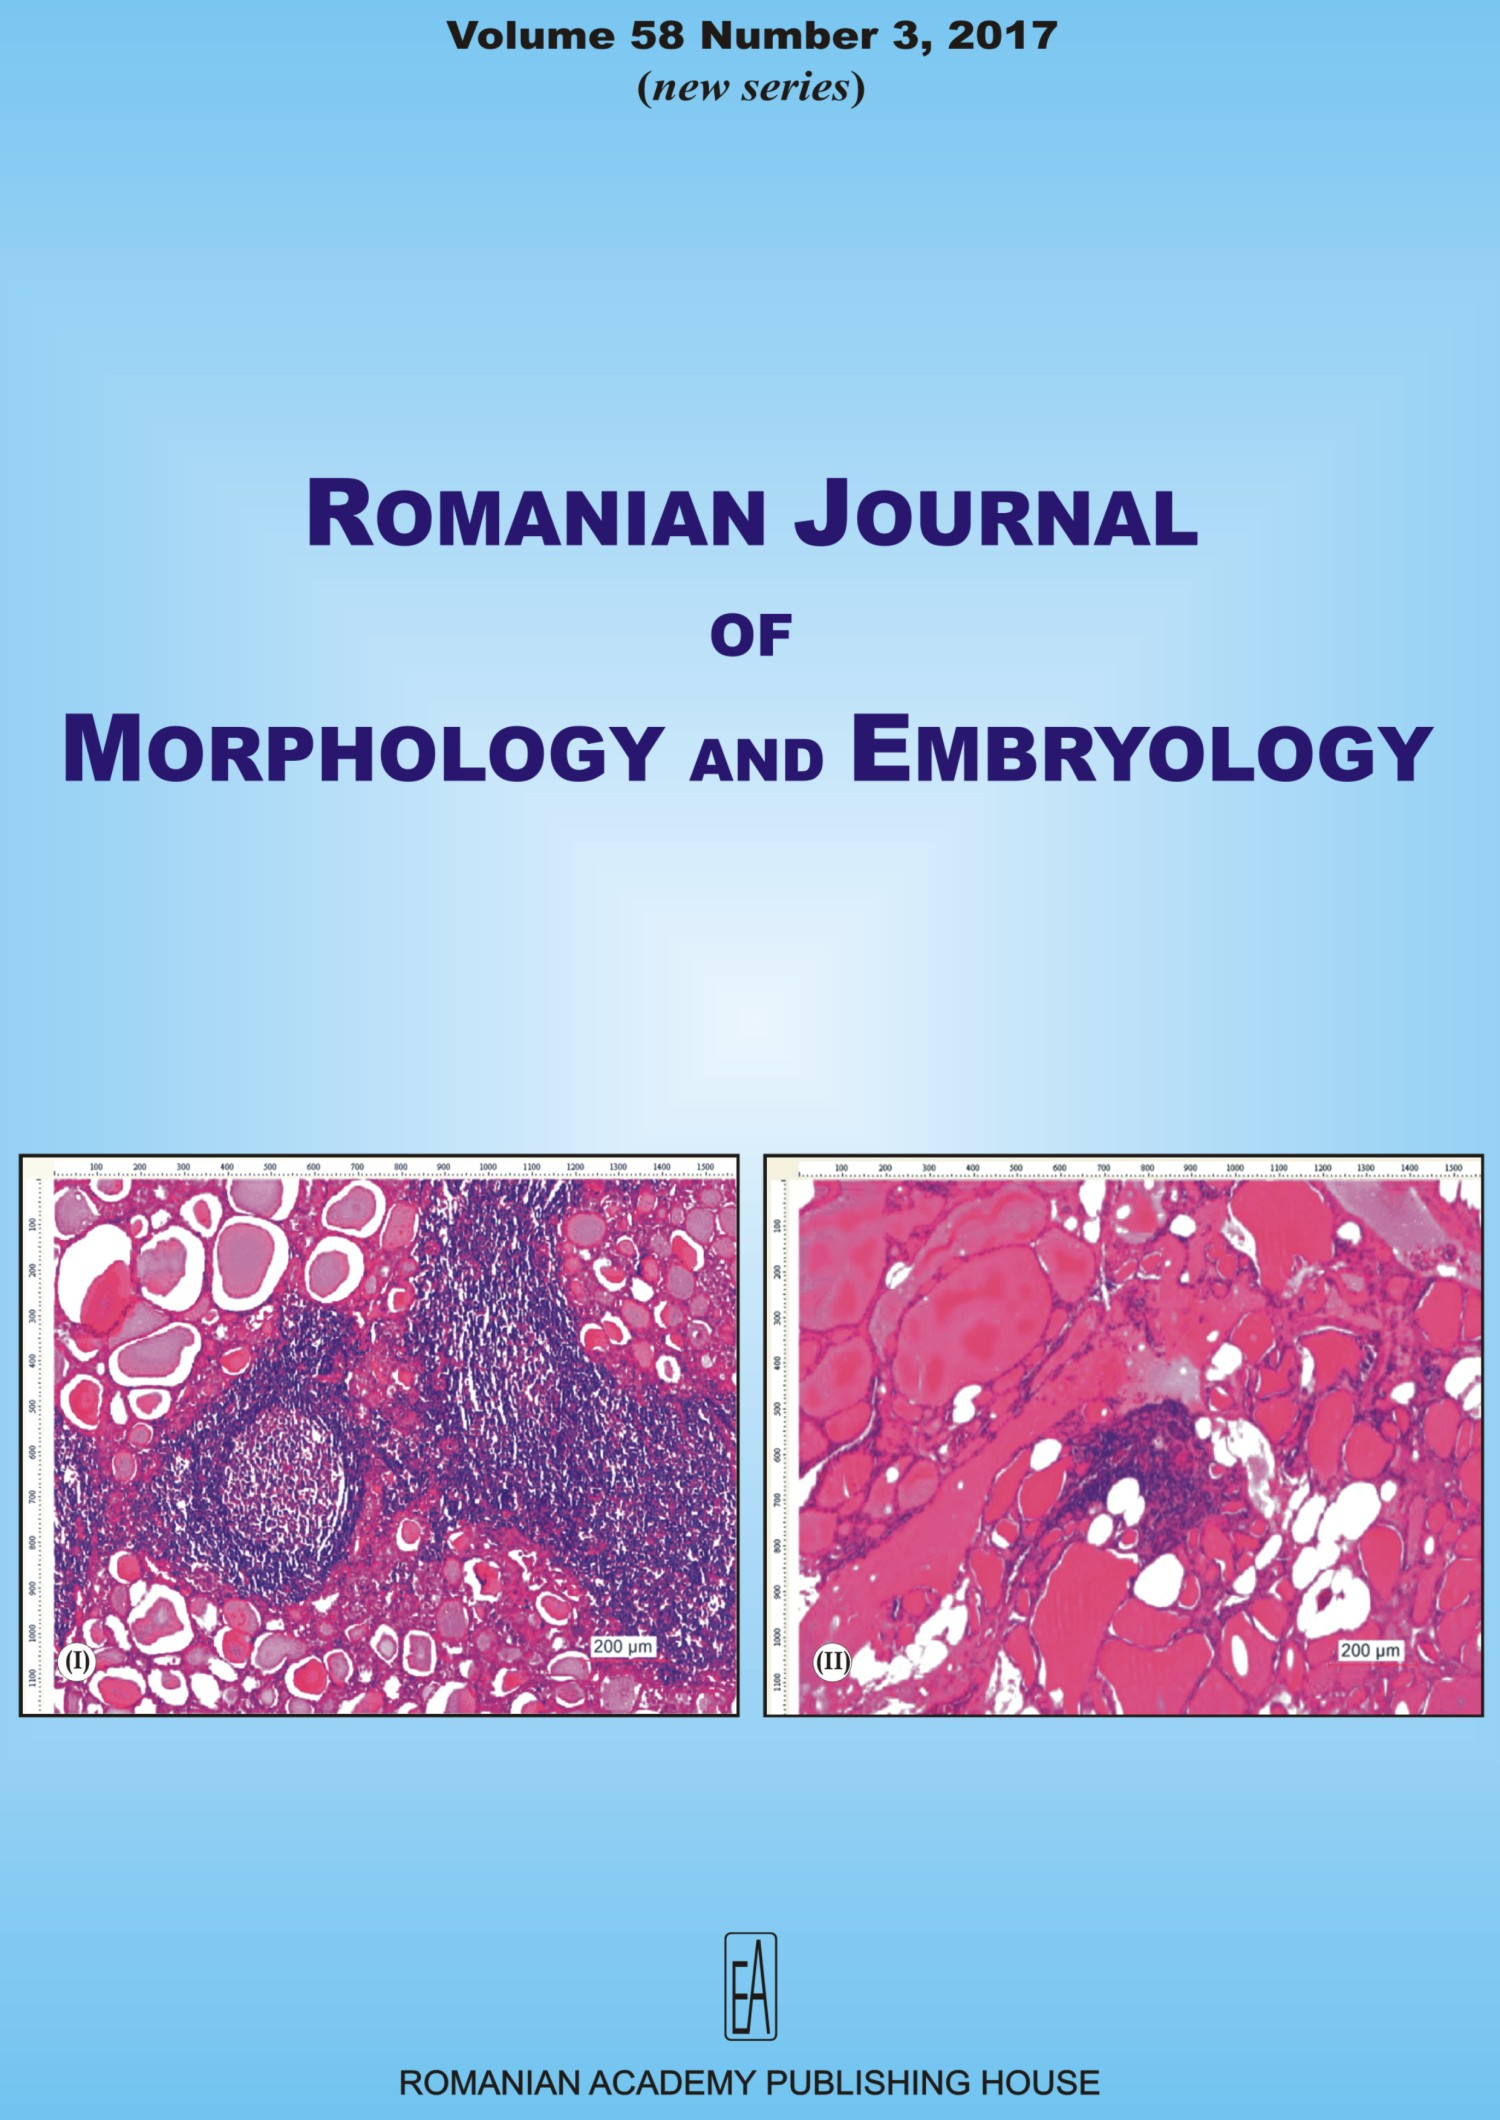 Romanian Journal of Morphology and Embryology, vol. 58 no. 3, 2017